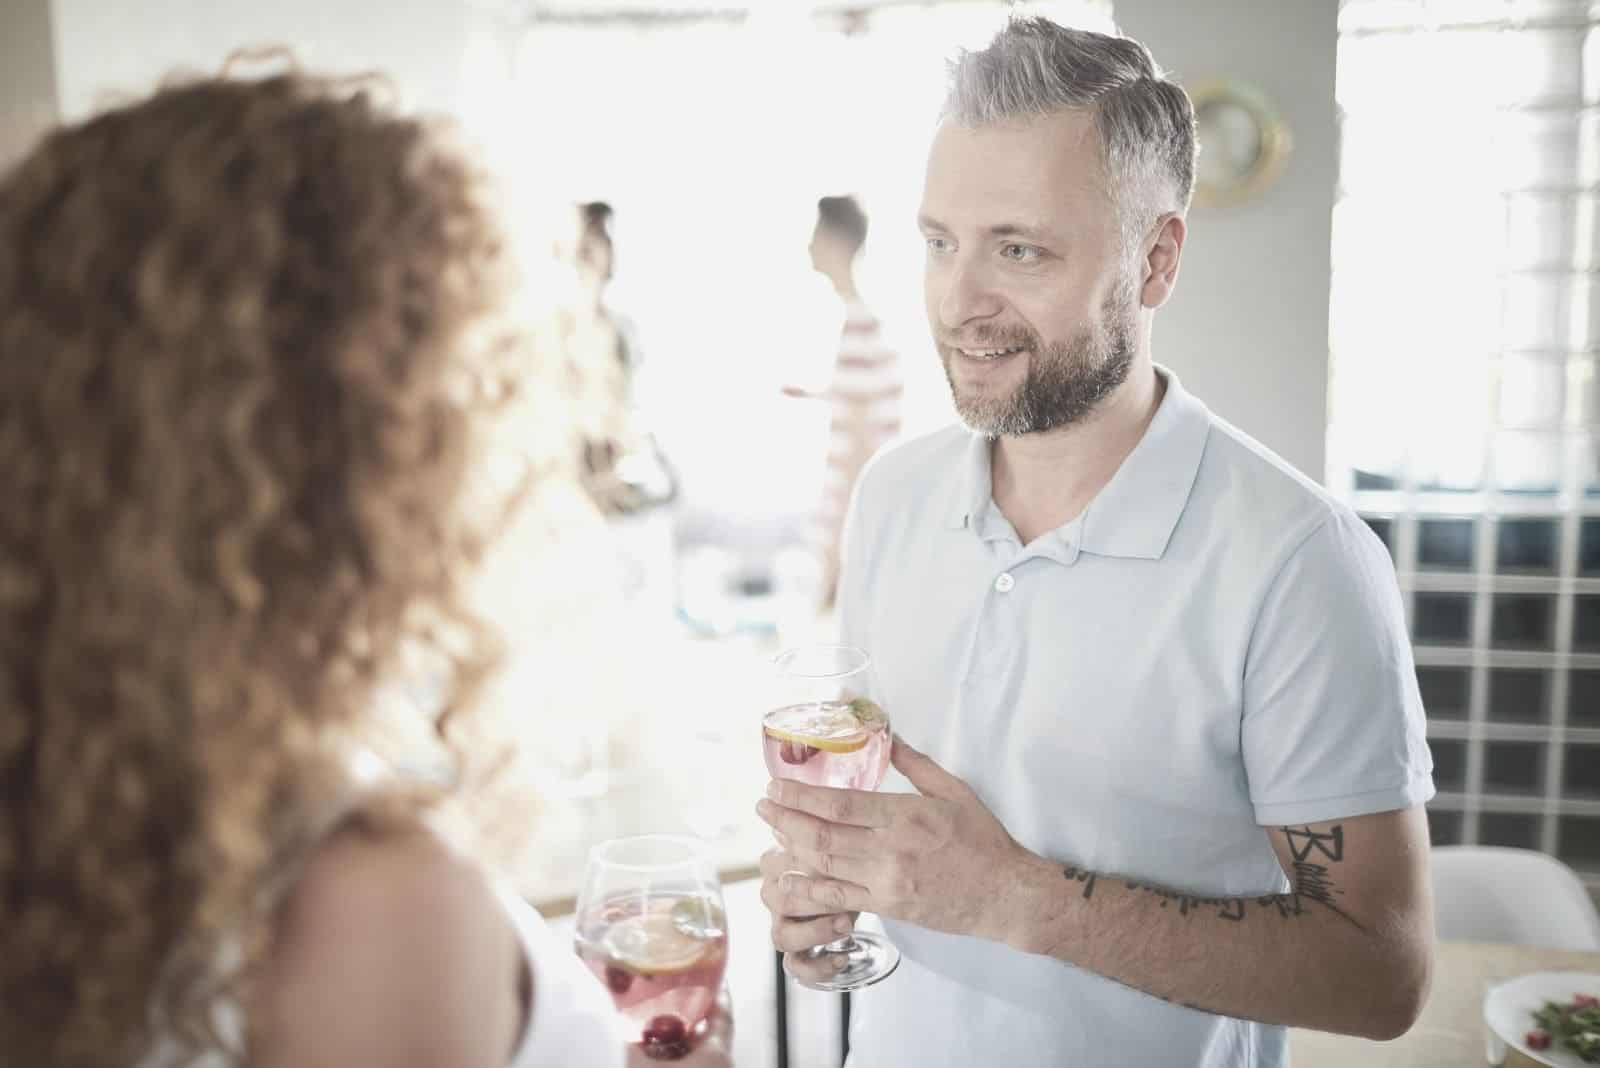 man holding wine while talking to a woman with curly hair in a get together